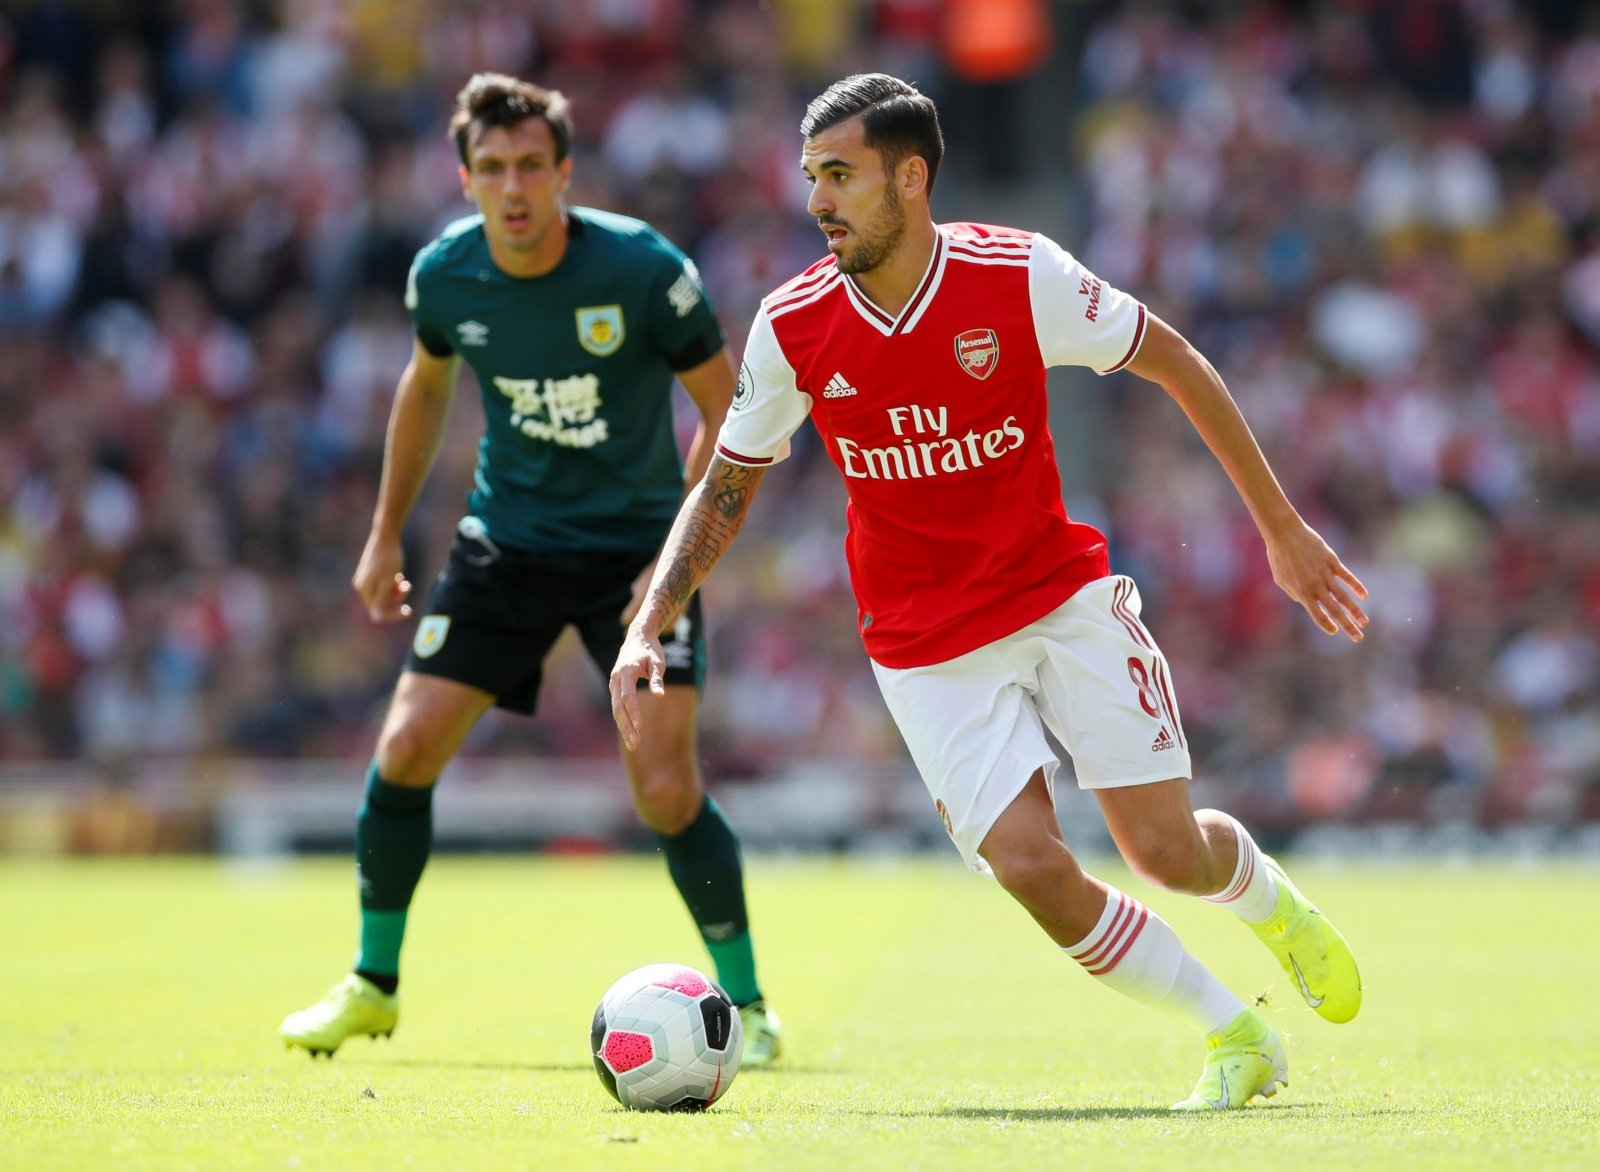 Arsenal: Dani Ceballos posts fighting message ahead of top-of-the-table clash against Liverpool